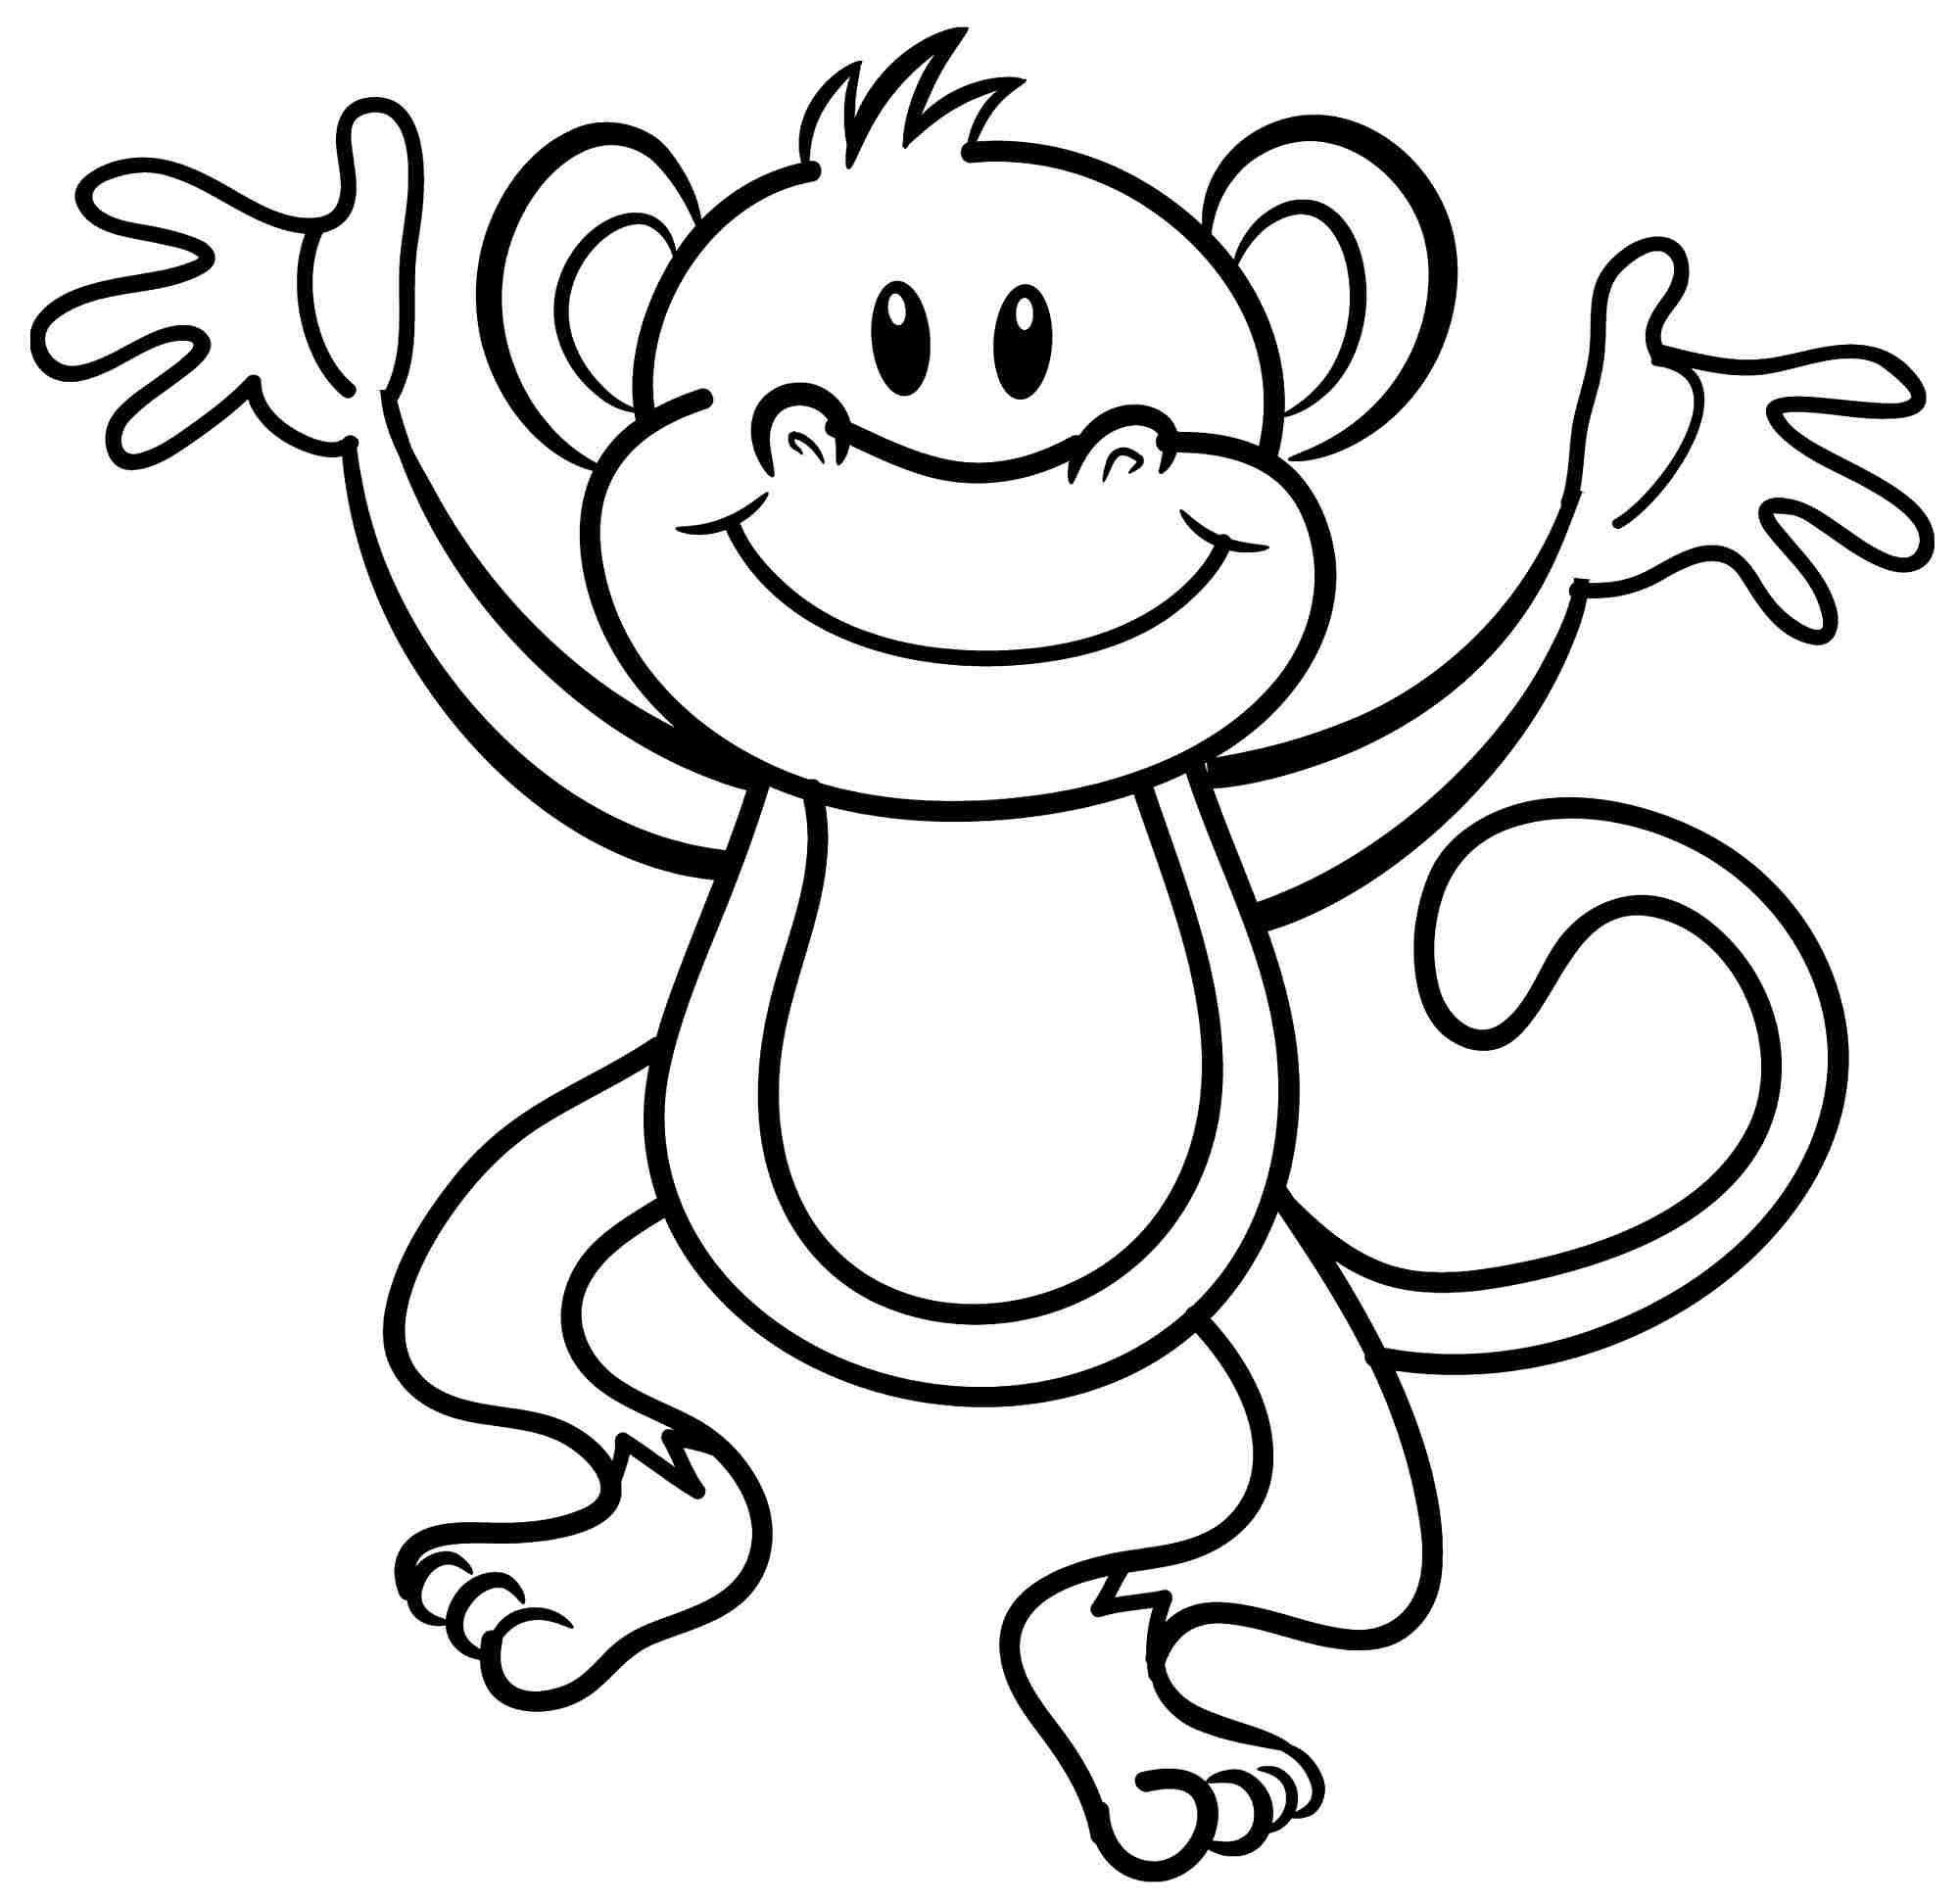 Free Coloring Pages Animals Image 46 For Kids